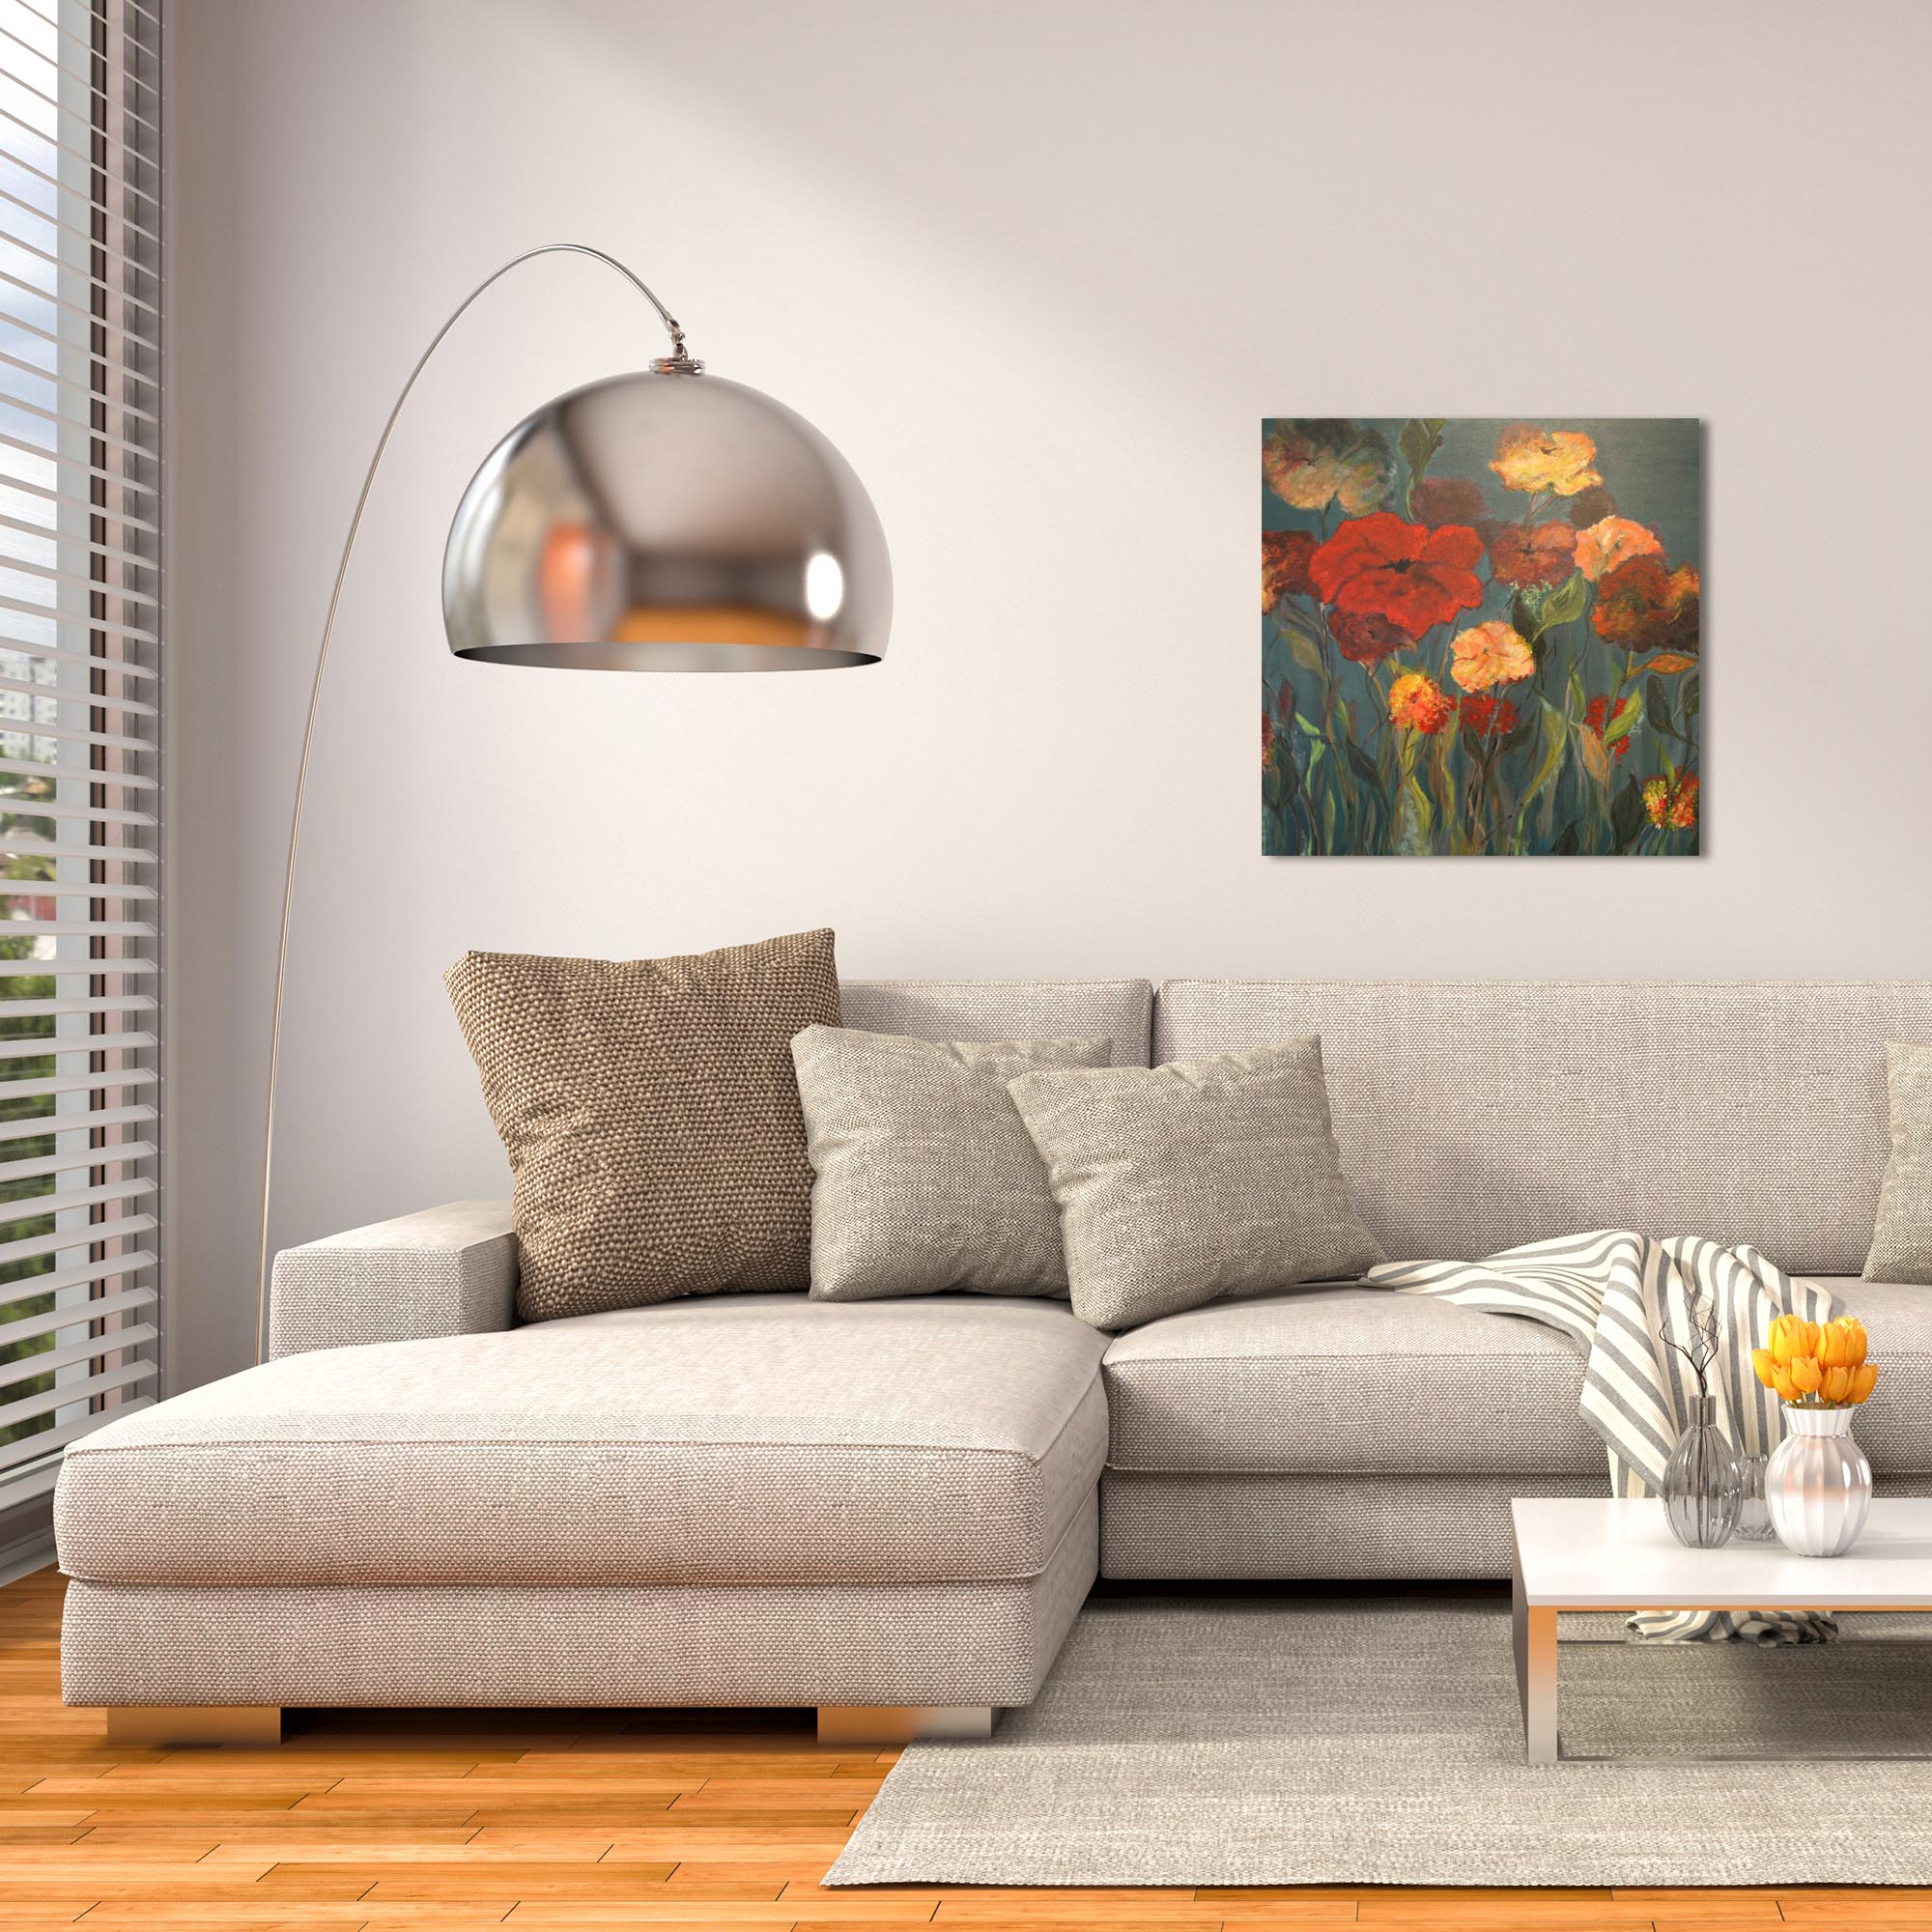 Traditional Wall Art 'Flower Patch' - Flower Bouquet Decor on Metal or Plexiglass - Lifestyle View